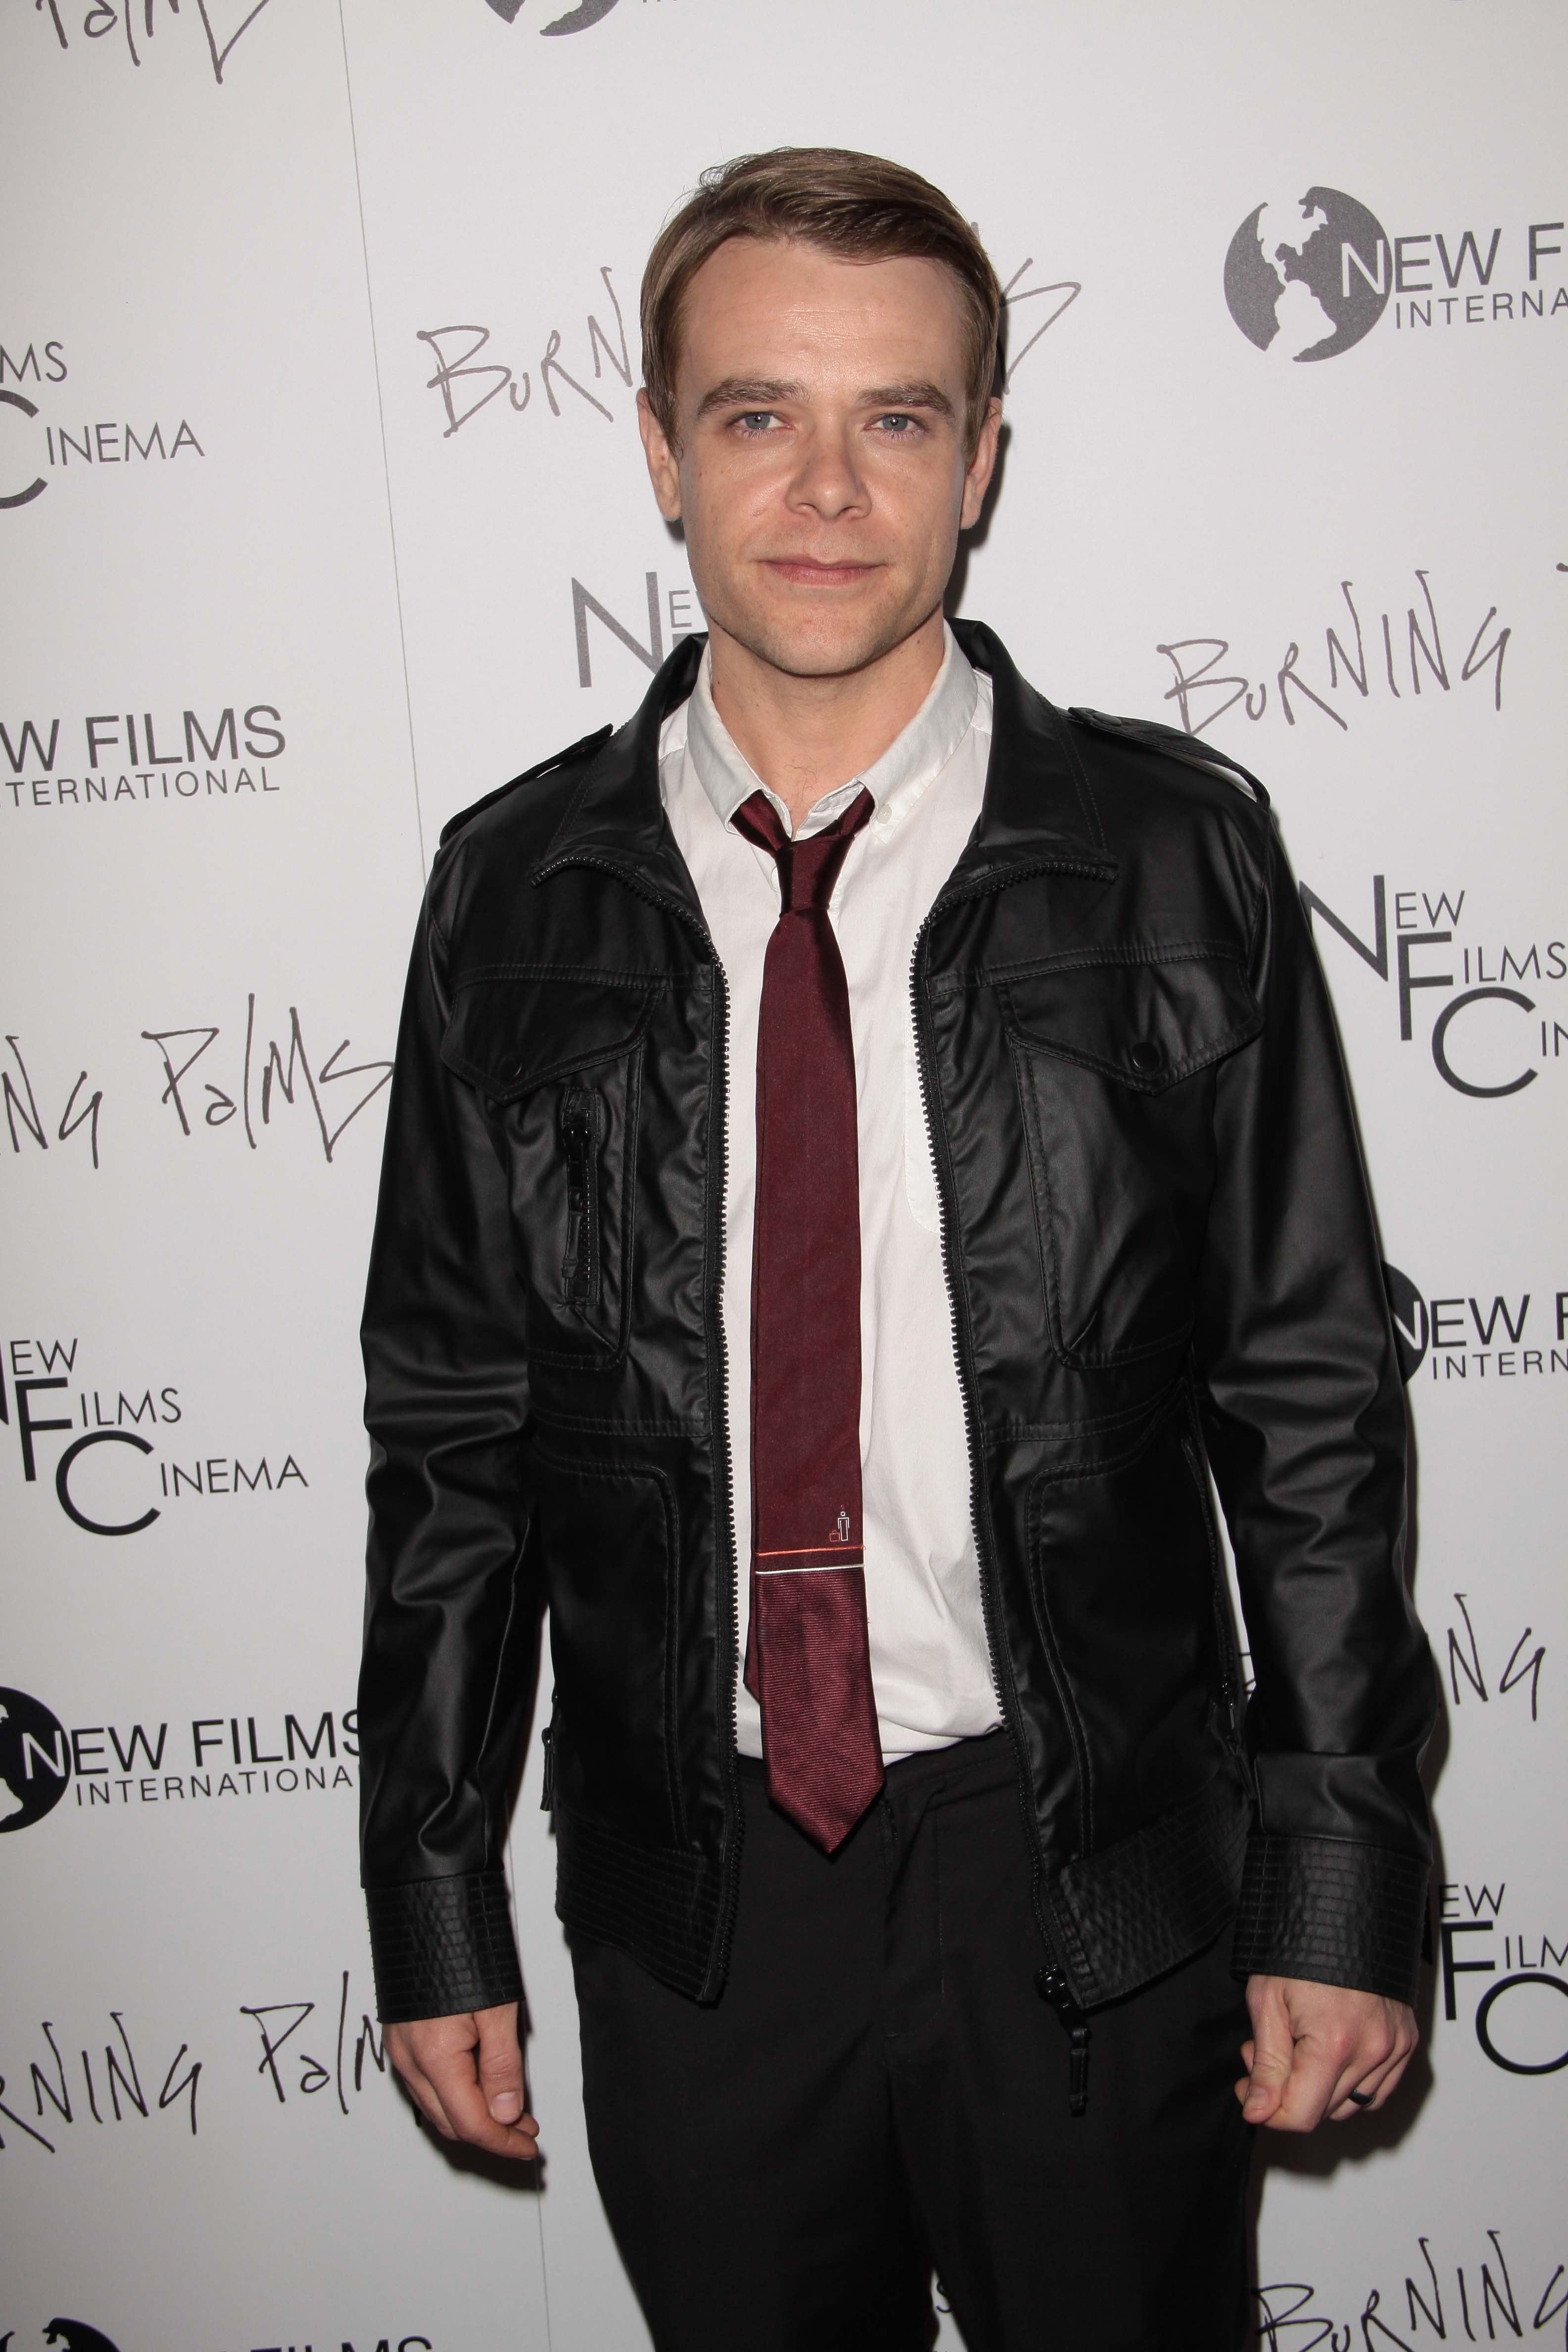 """Nick Stahl at the """"Burning Palms"""" Los Angeles Premiere, ArcLight Cinemas, Hollywood on January 12, 2011 in California 